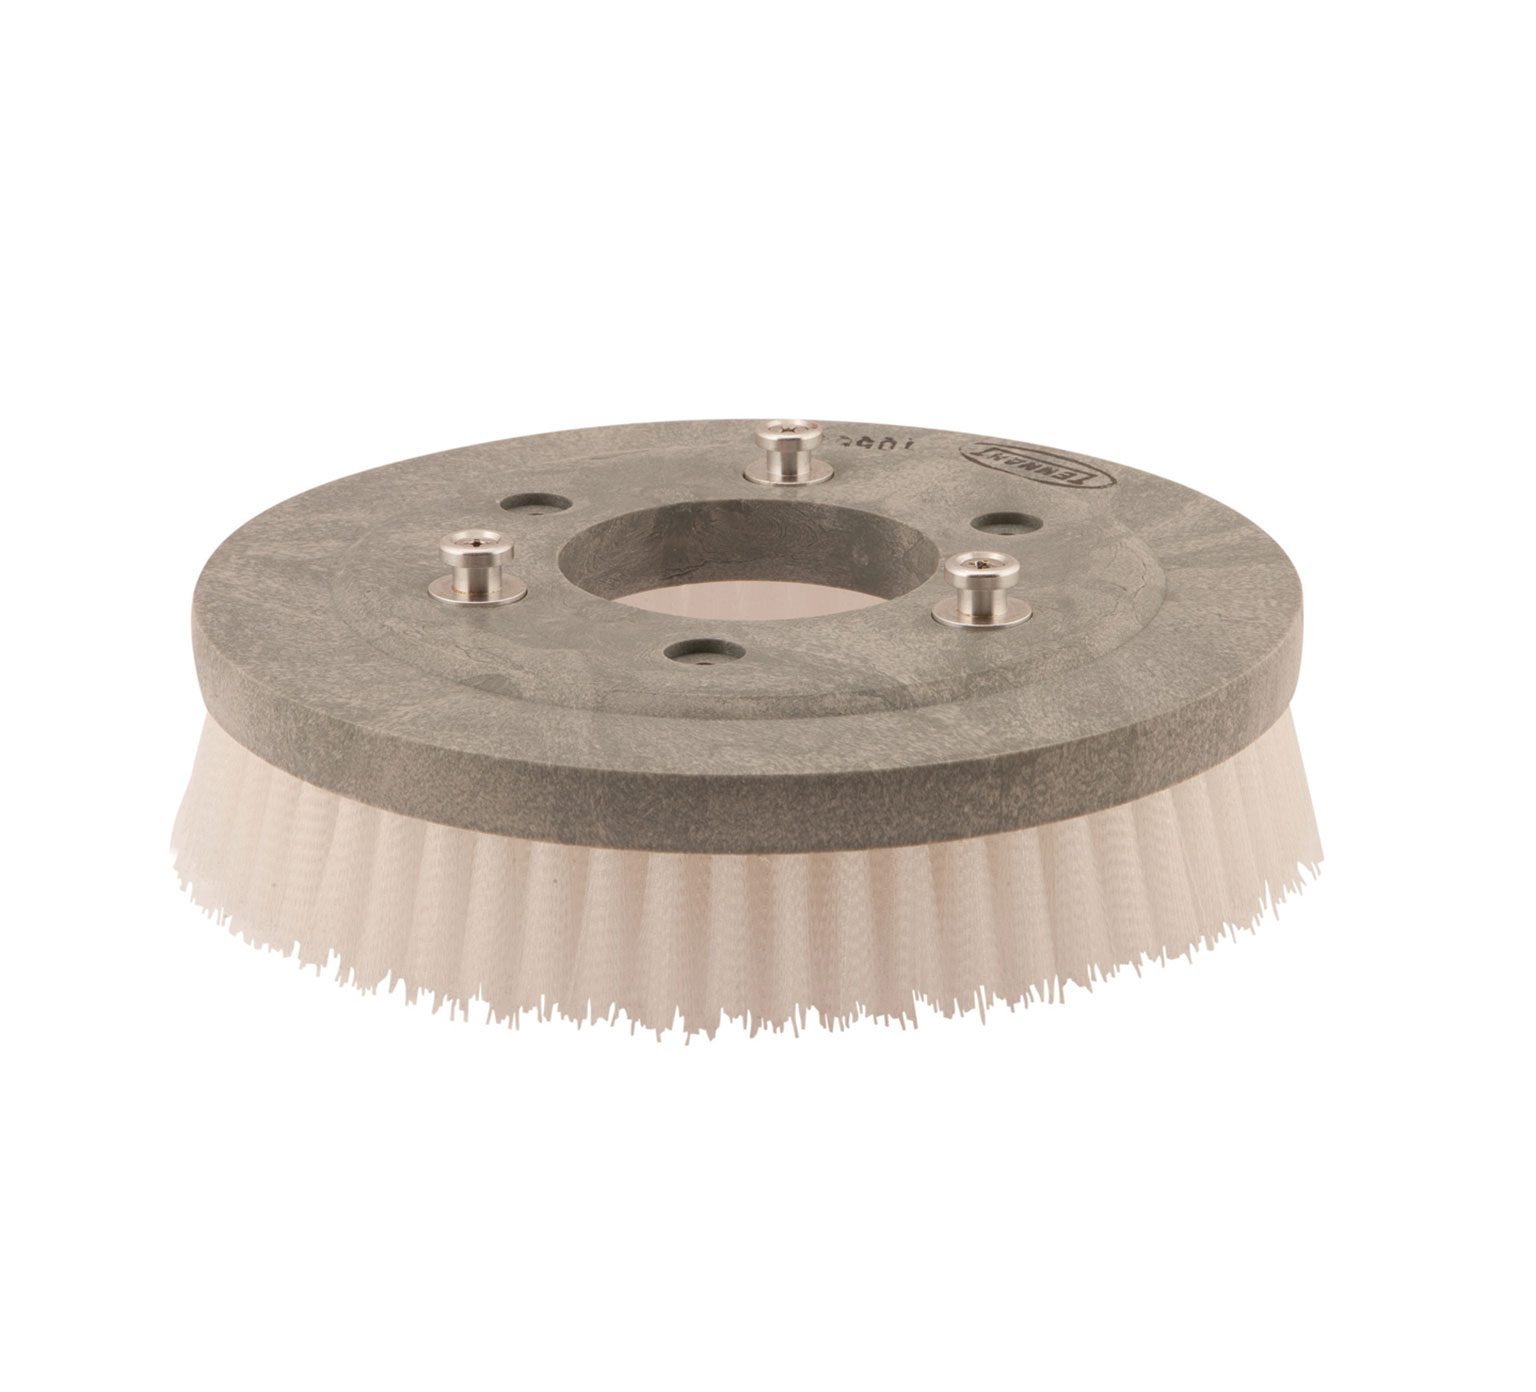 1056306 Nylon Disk Scrub Brush Assembly – 12 in / 304.8 mm alt 1